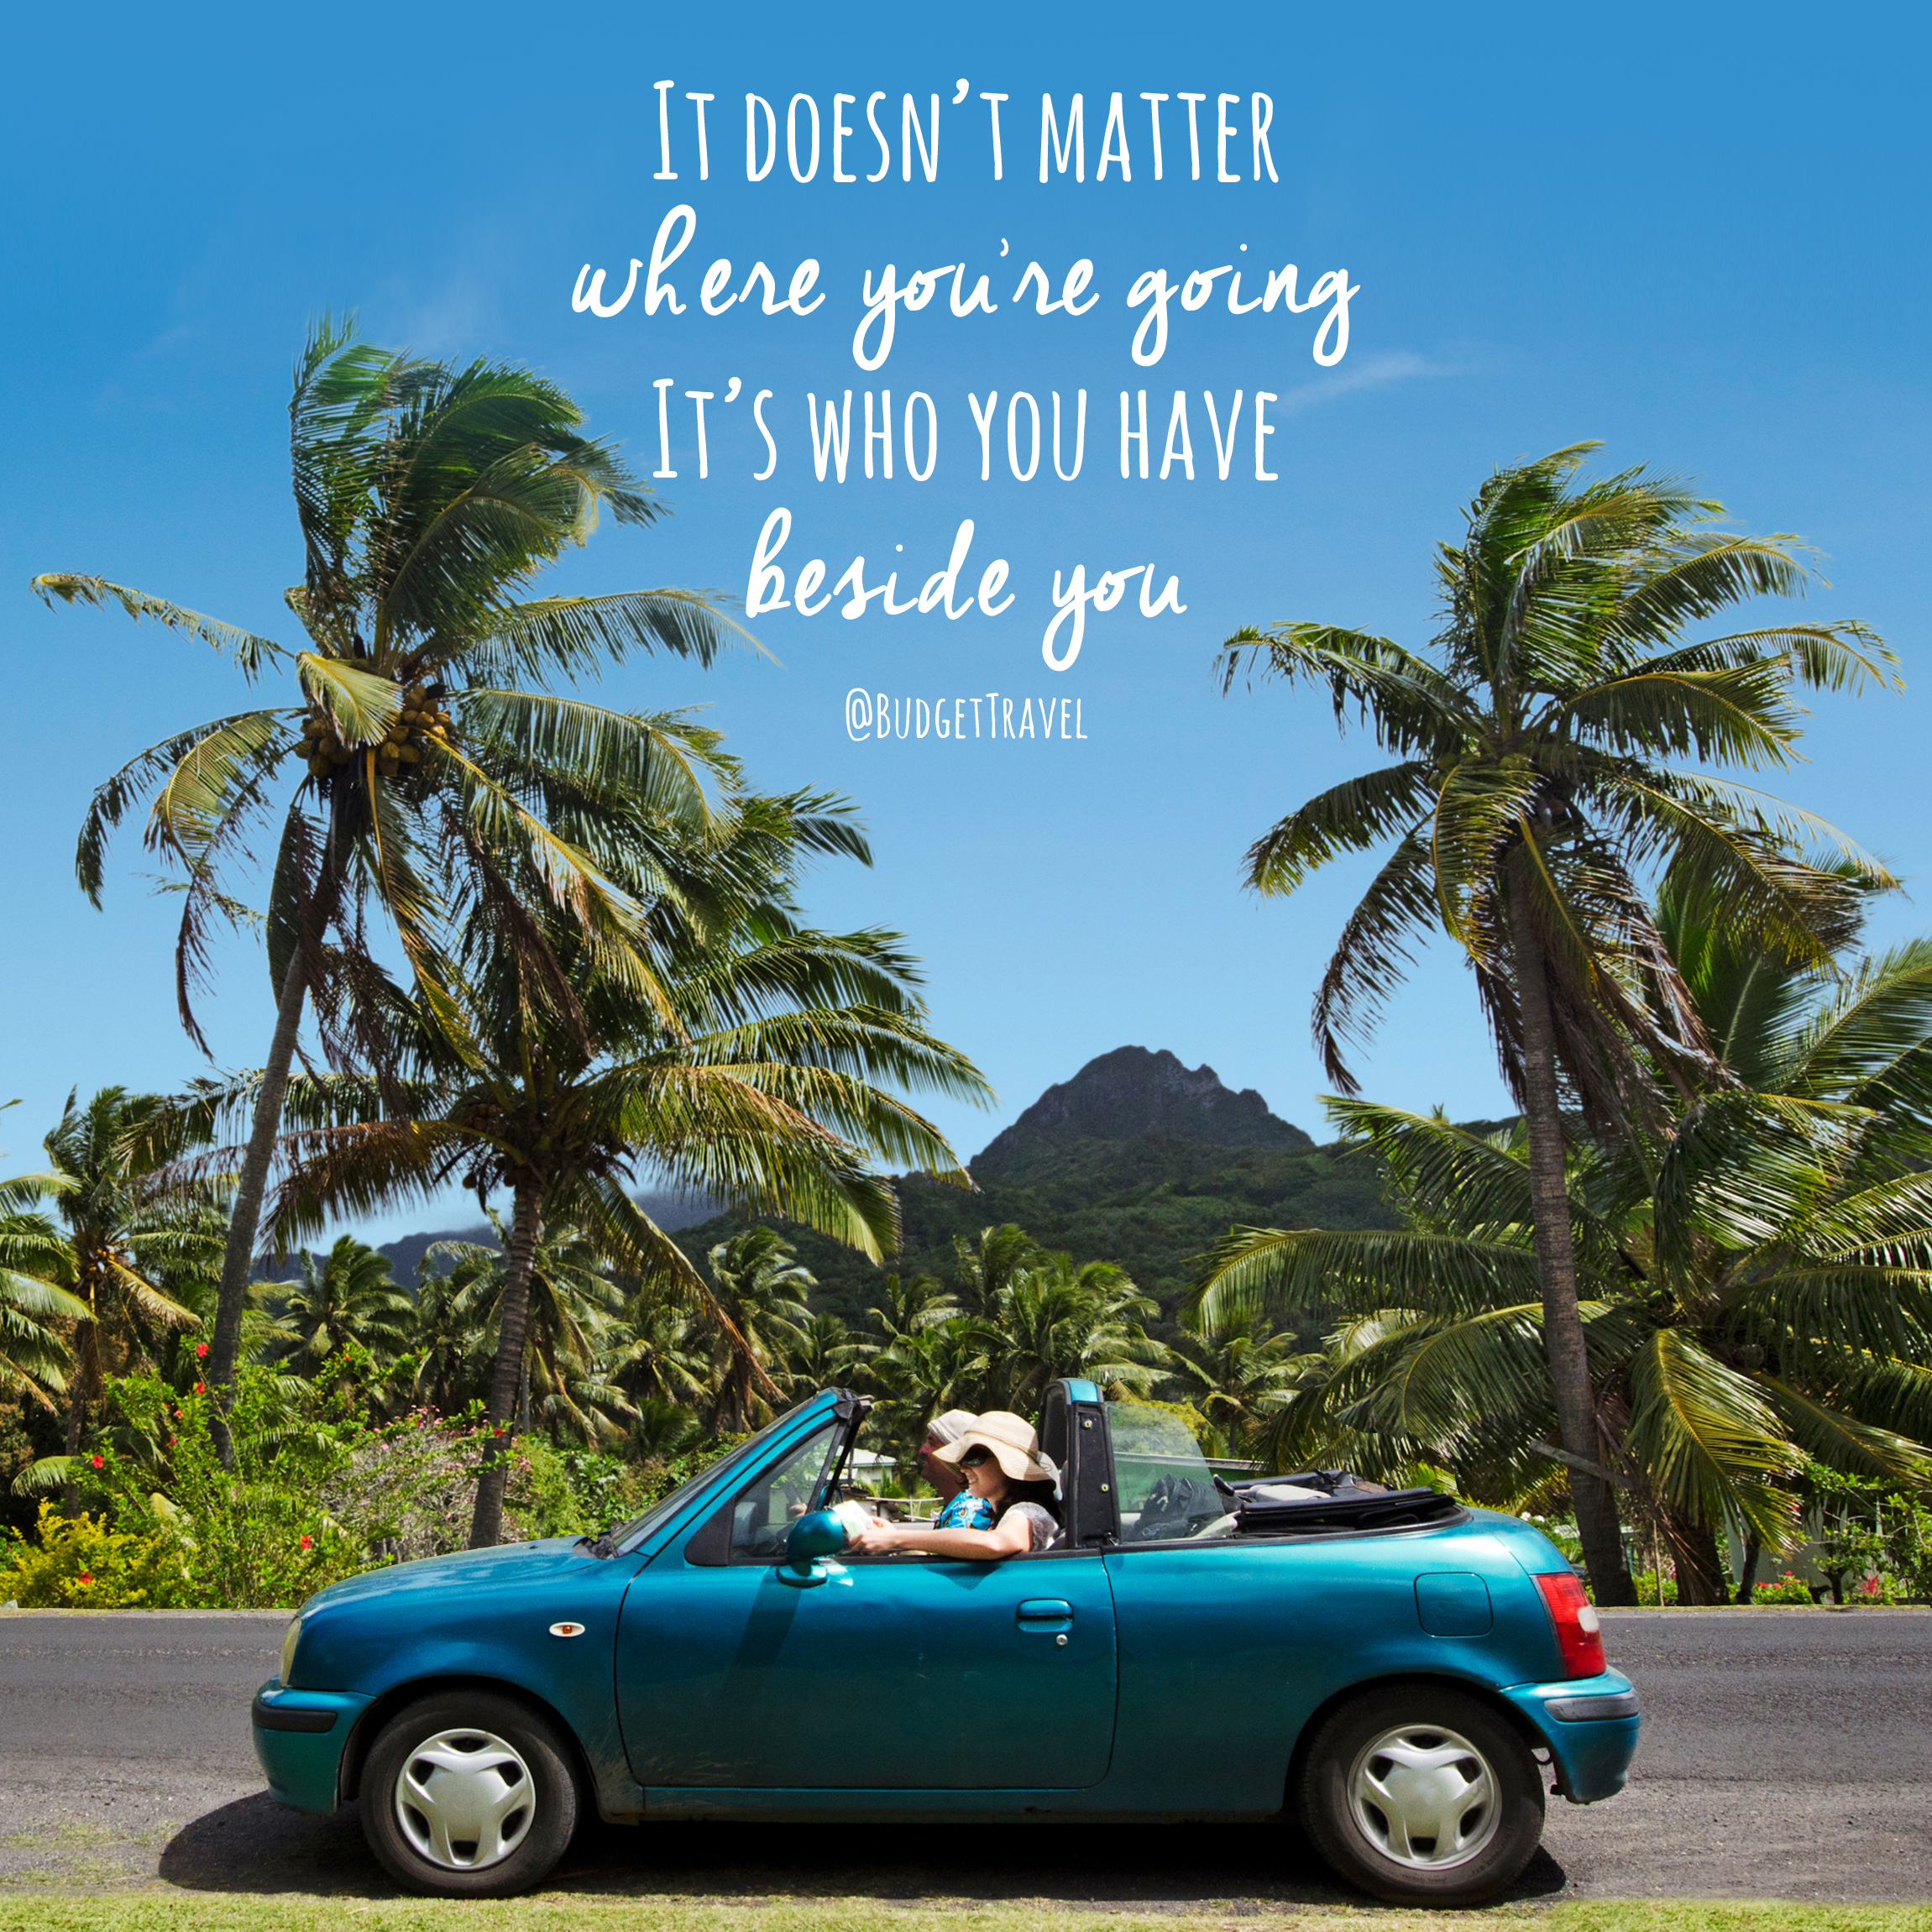 it-doesnt-matter-travel-quote-472015-191041_original